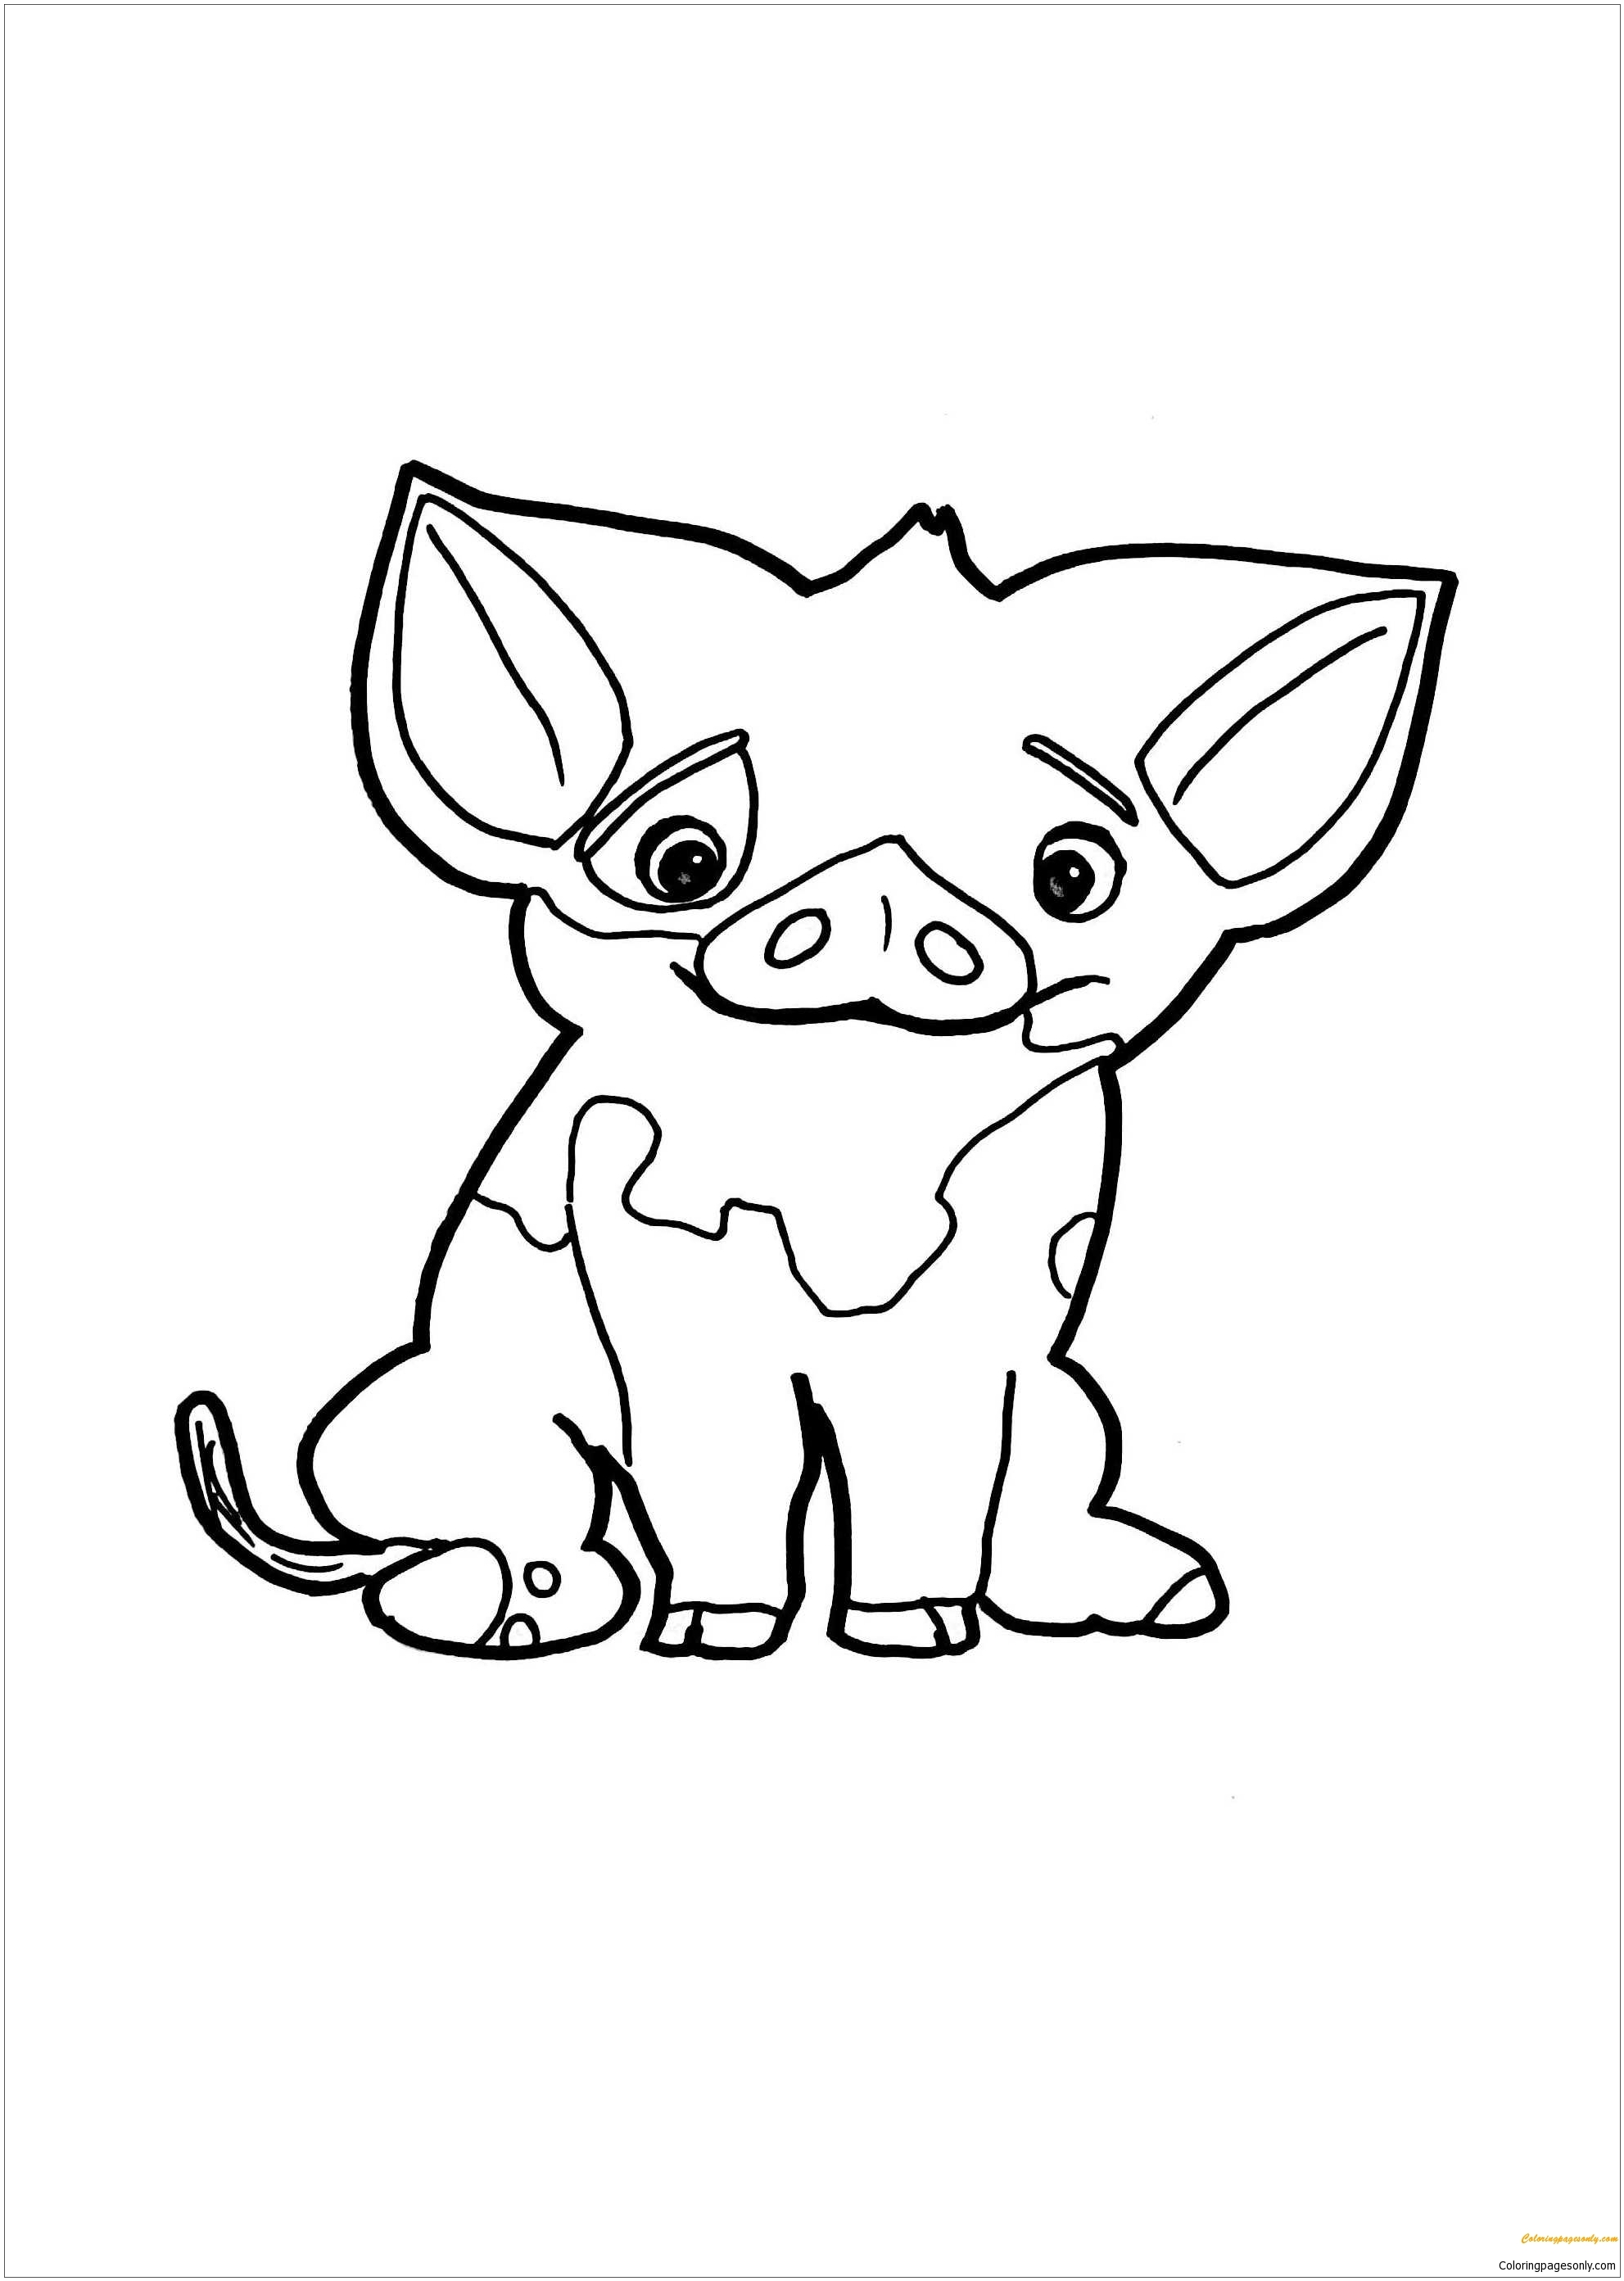 pig from moana coloring page pua pig from moana 2 coloring page free coloring pages from page coloring moana pig